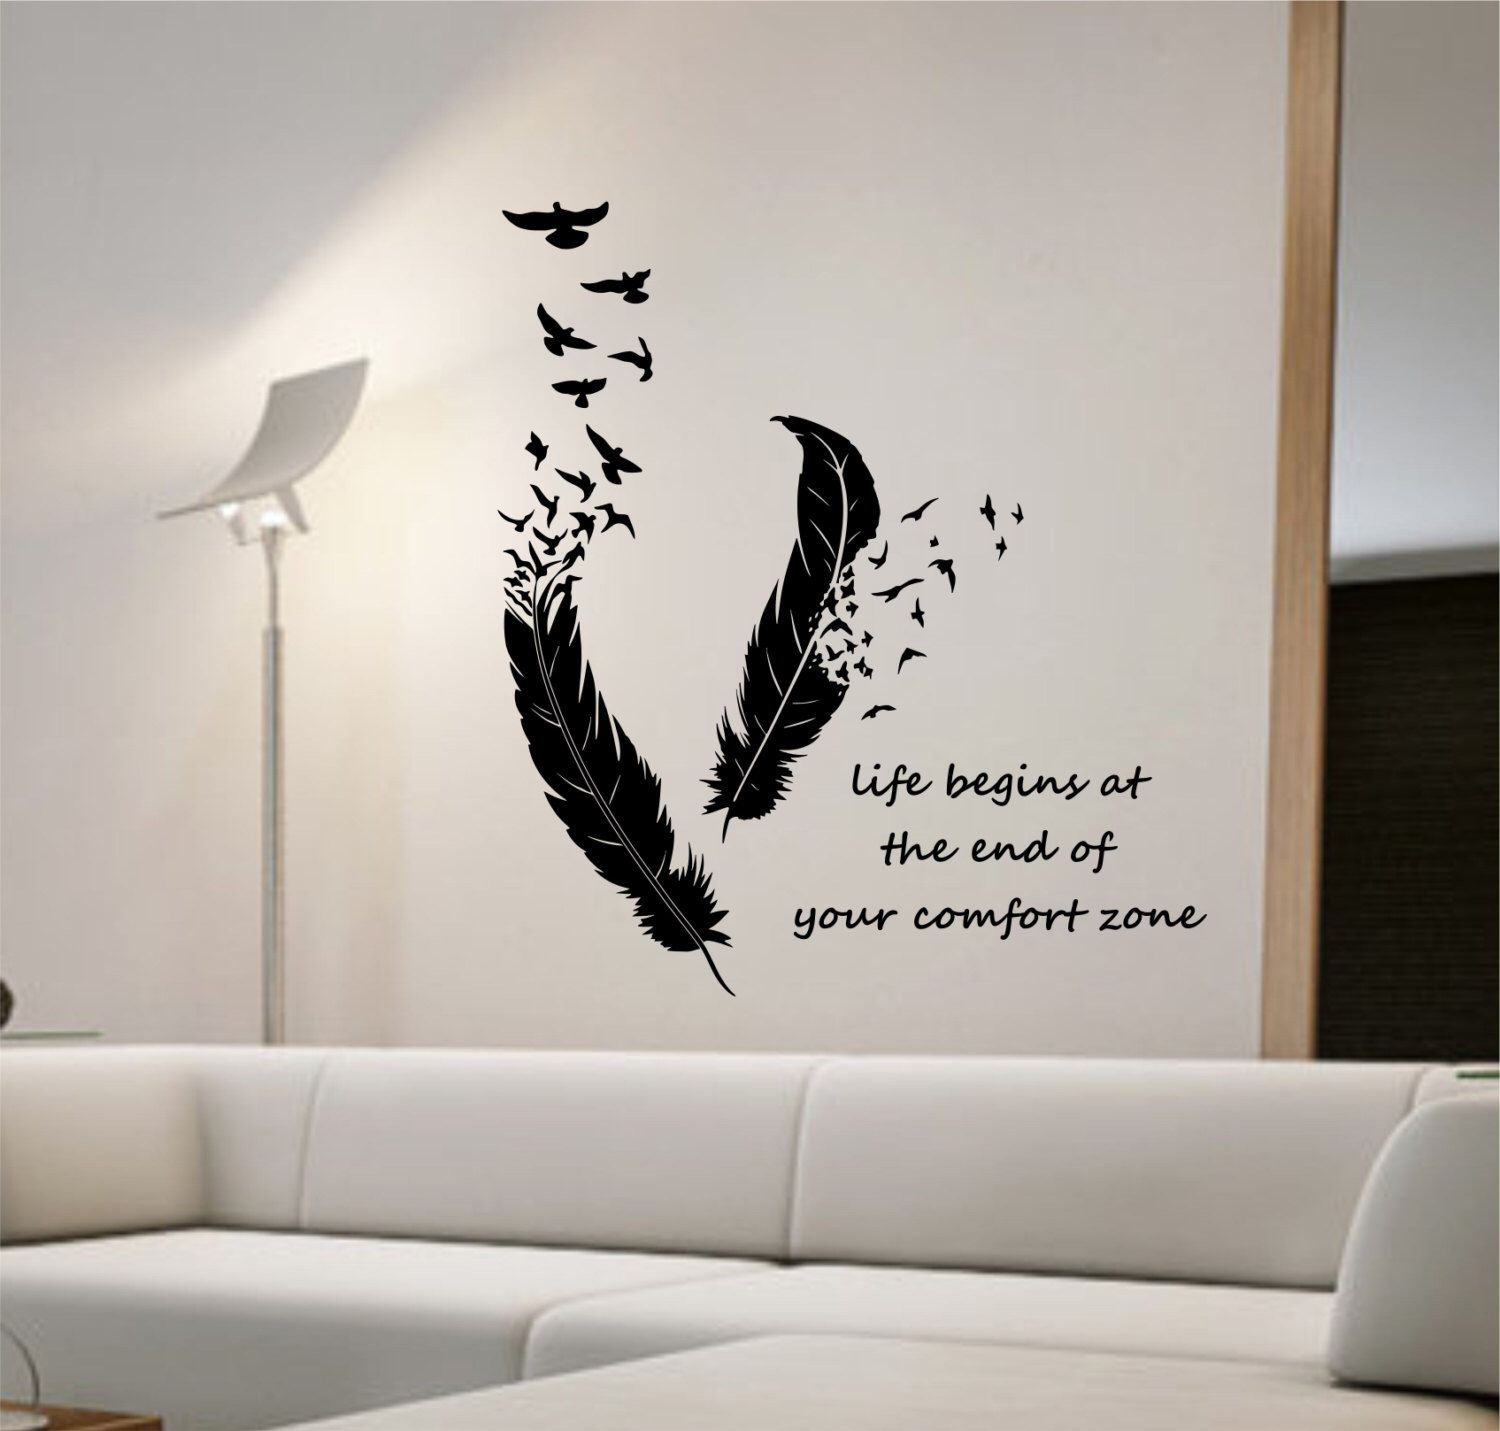 Vinyl Wall Decal Feathers Turning Into Birds Vinyl Wall Decal Sticker Art